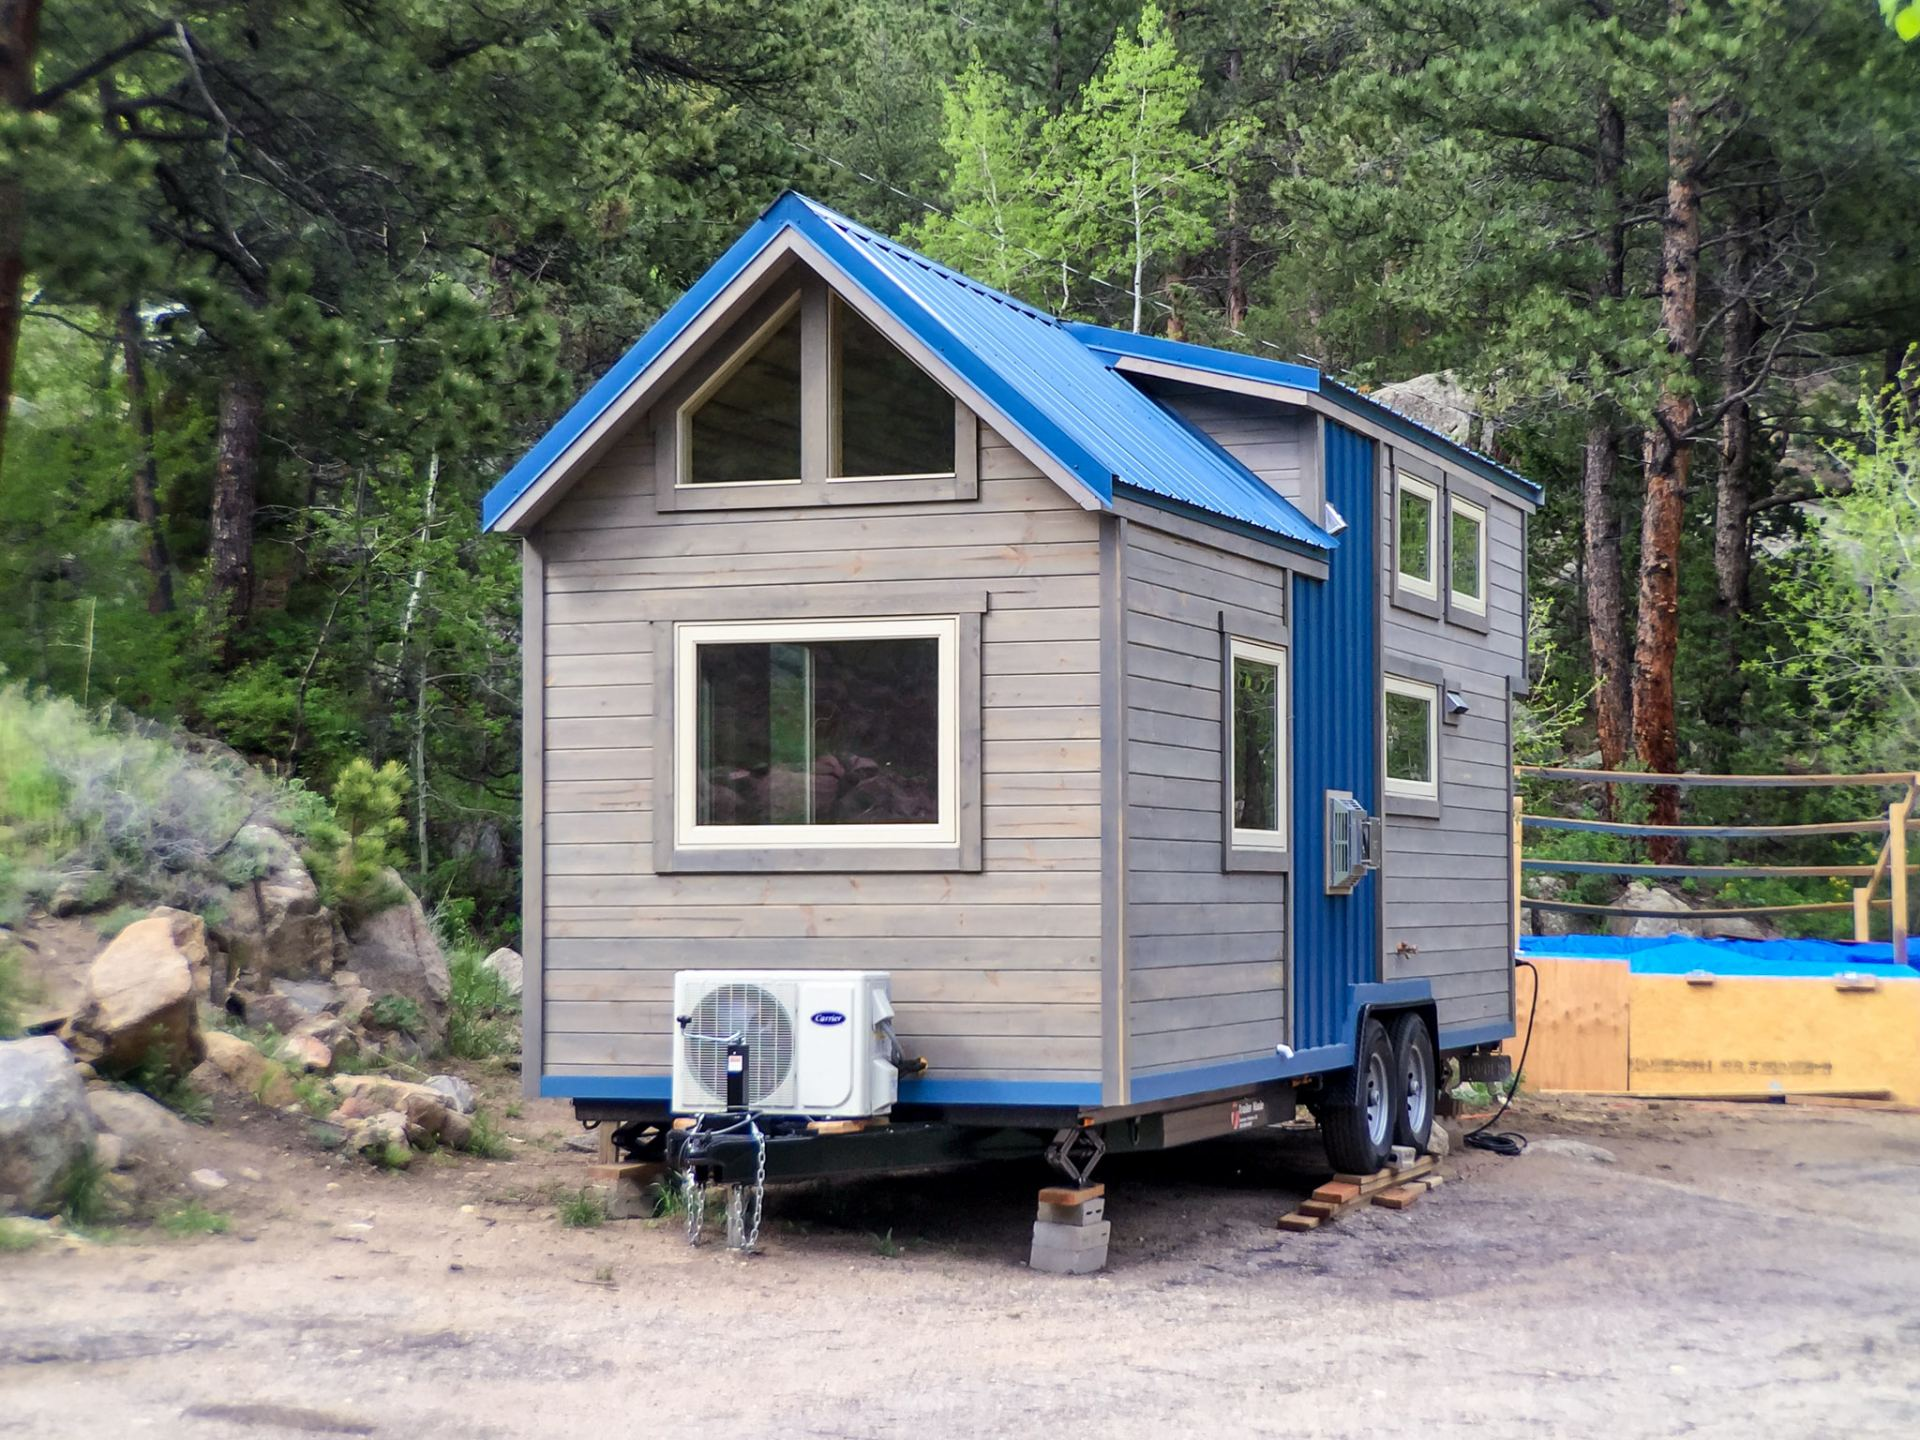 Fullsize Of Tiny House For Sale With Land